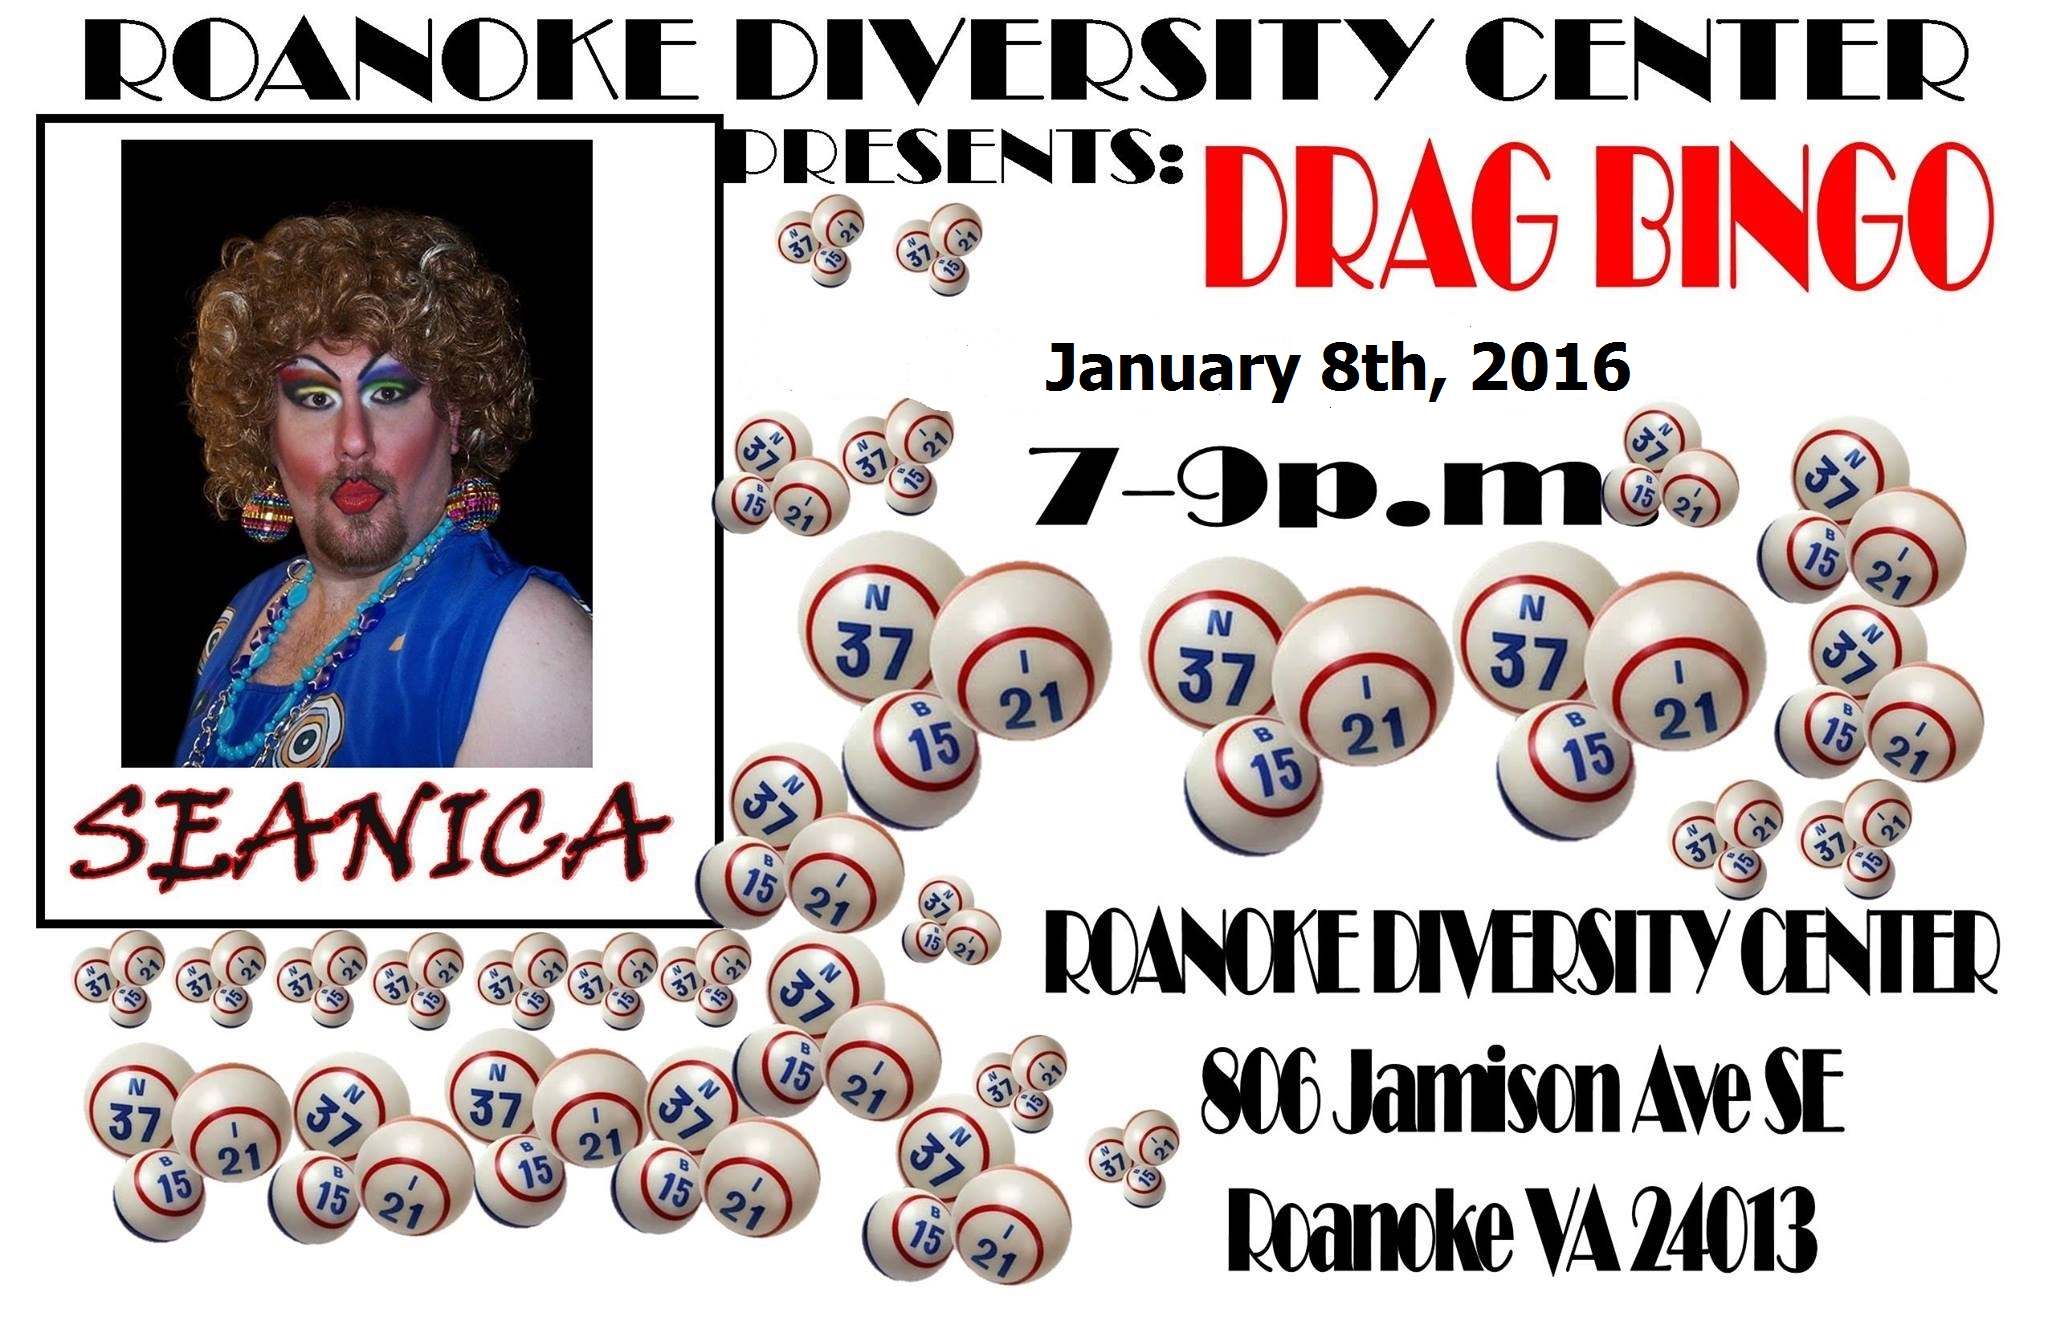 Drag Bingo Jan 2016